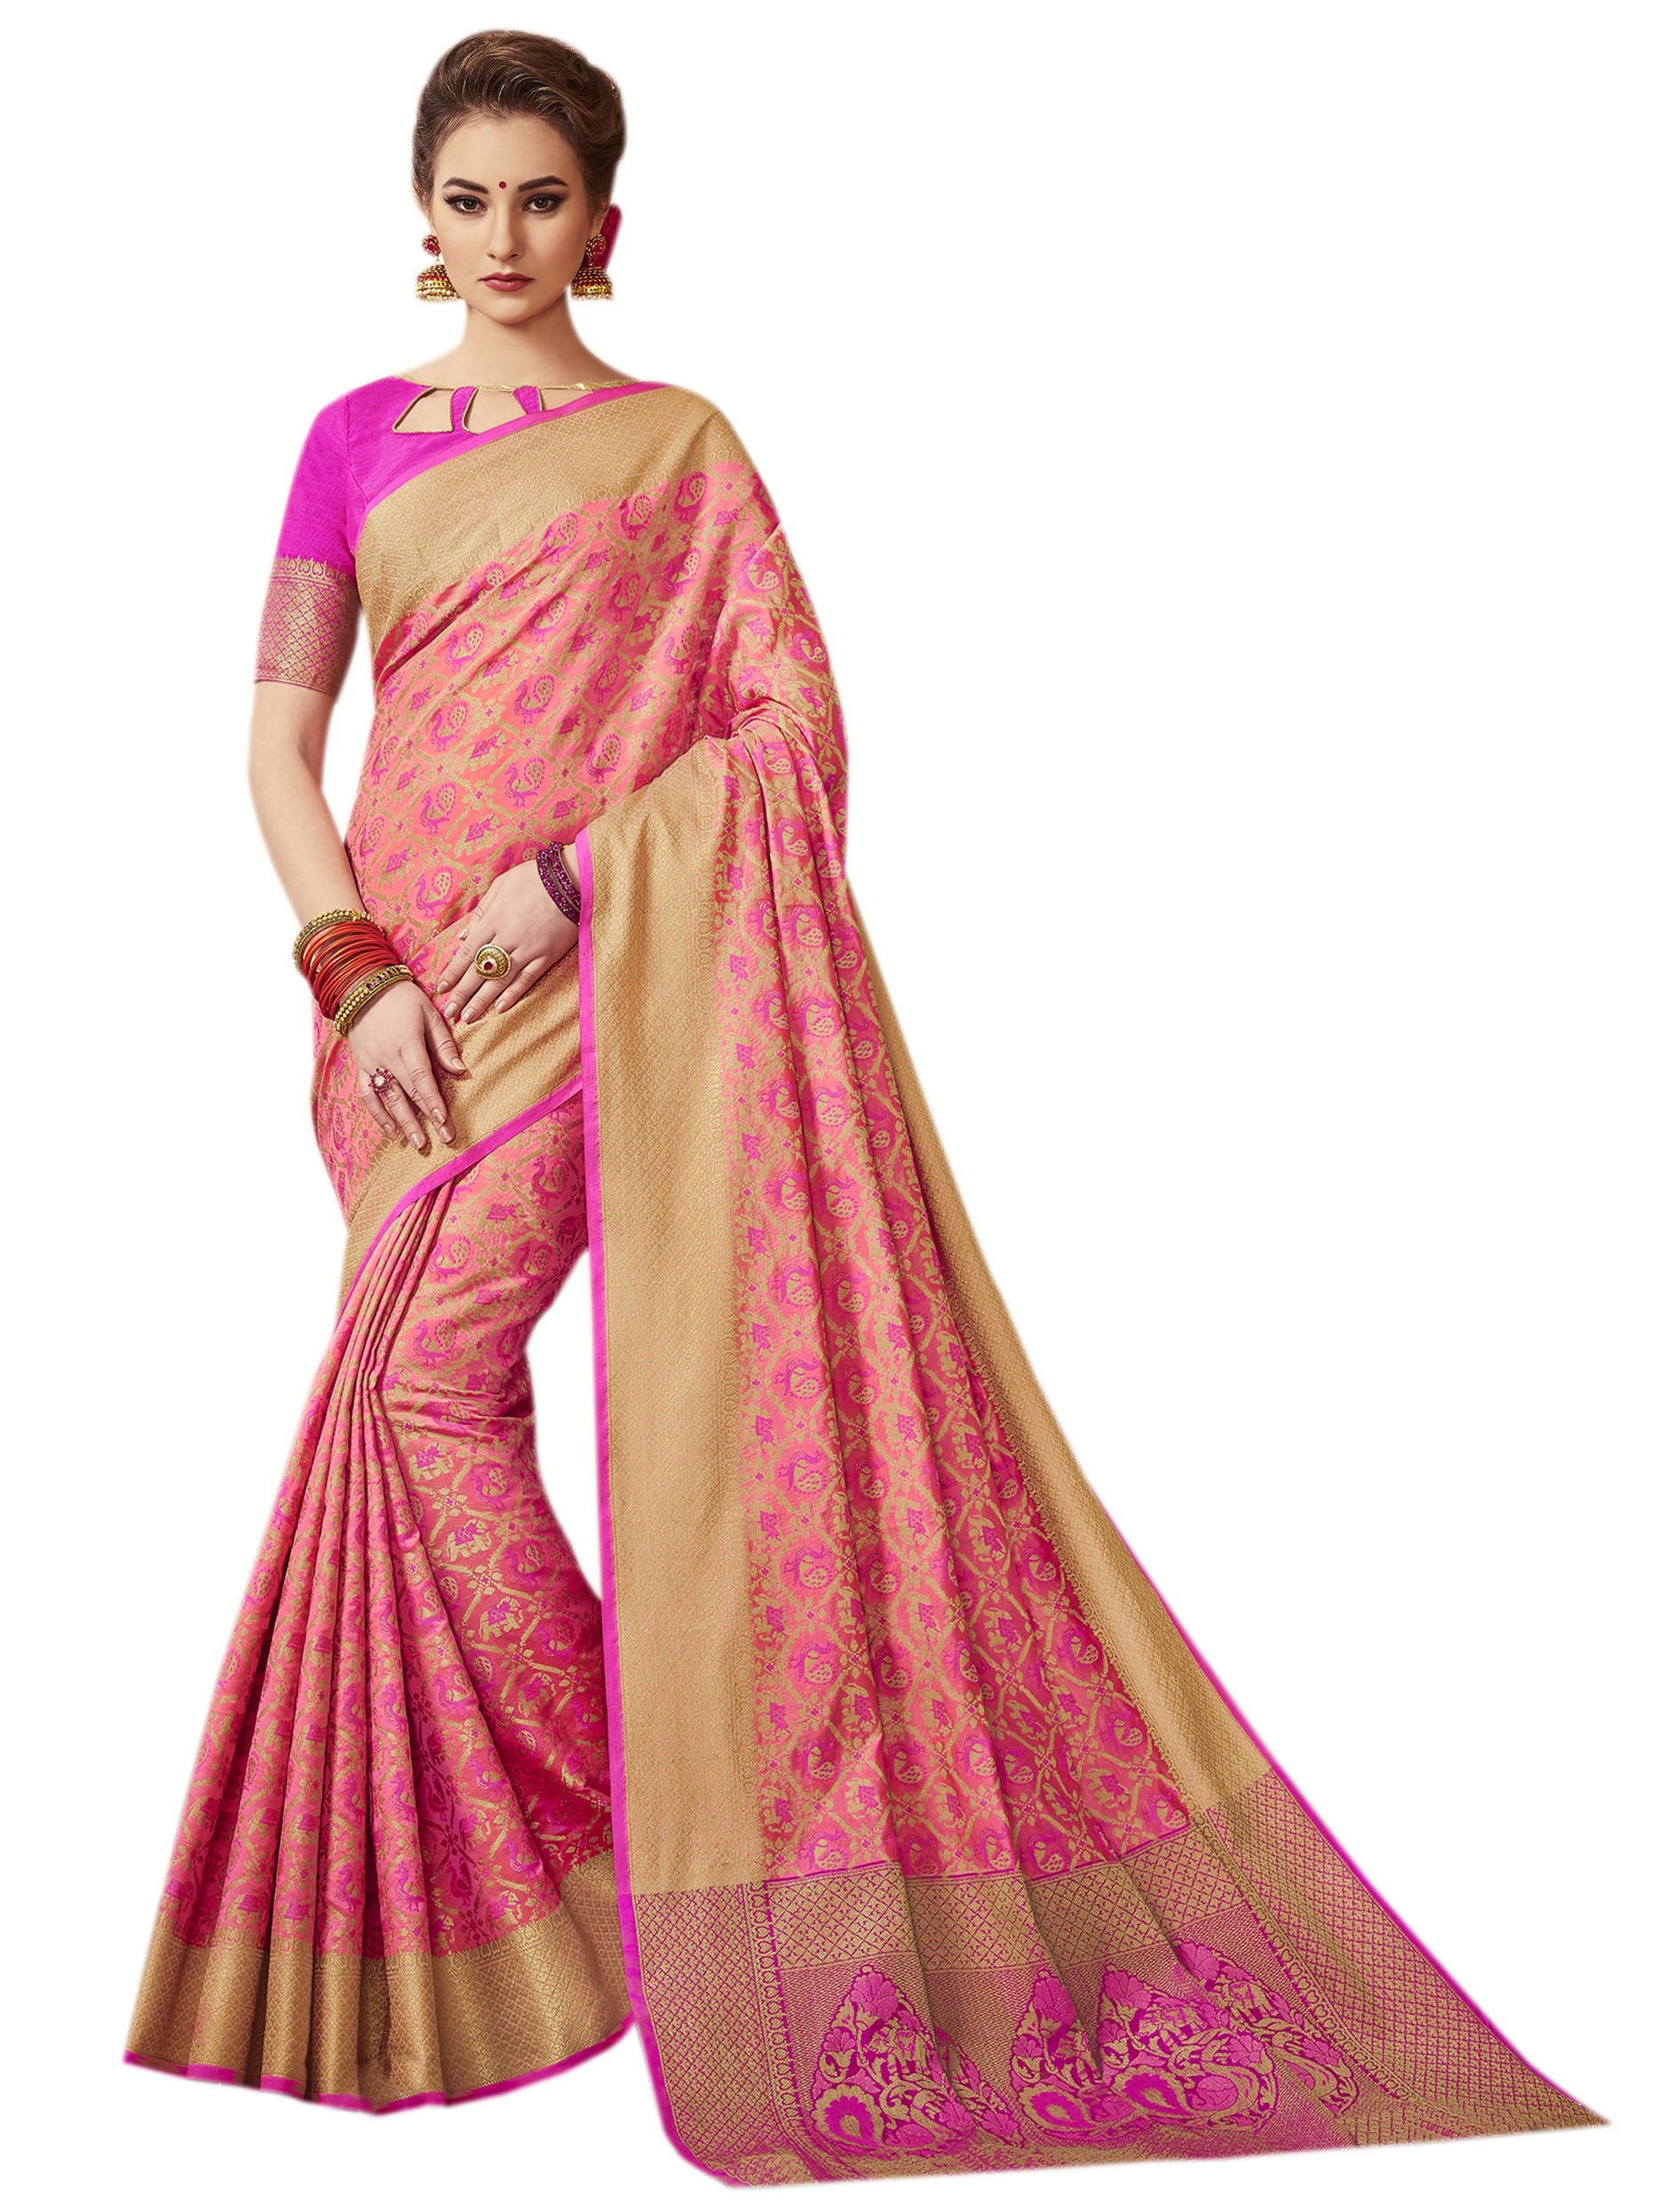 79d1d65032 Pink patola silk saree with blouse - Vastrang - 2637982